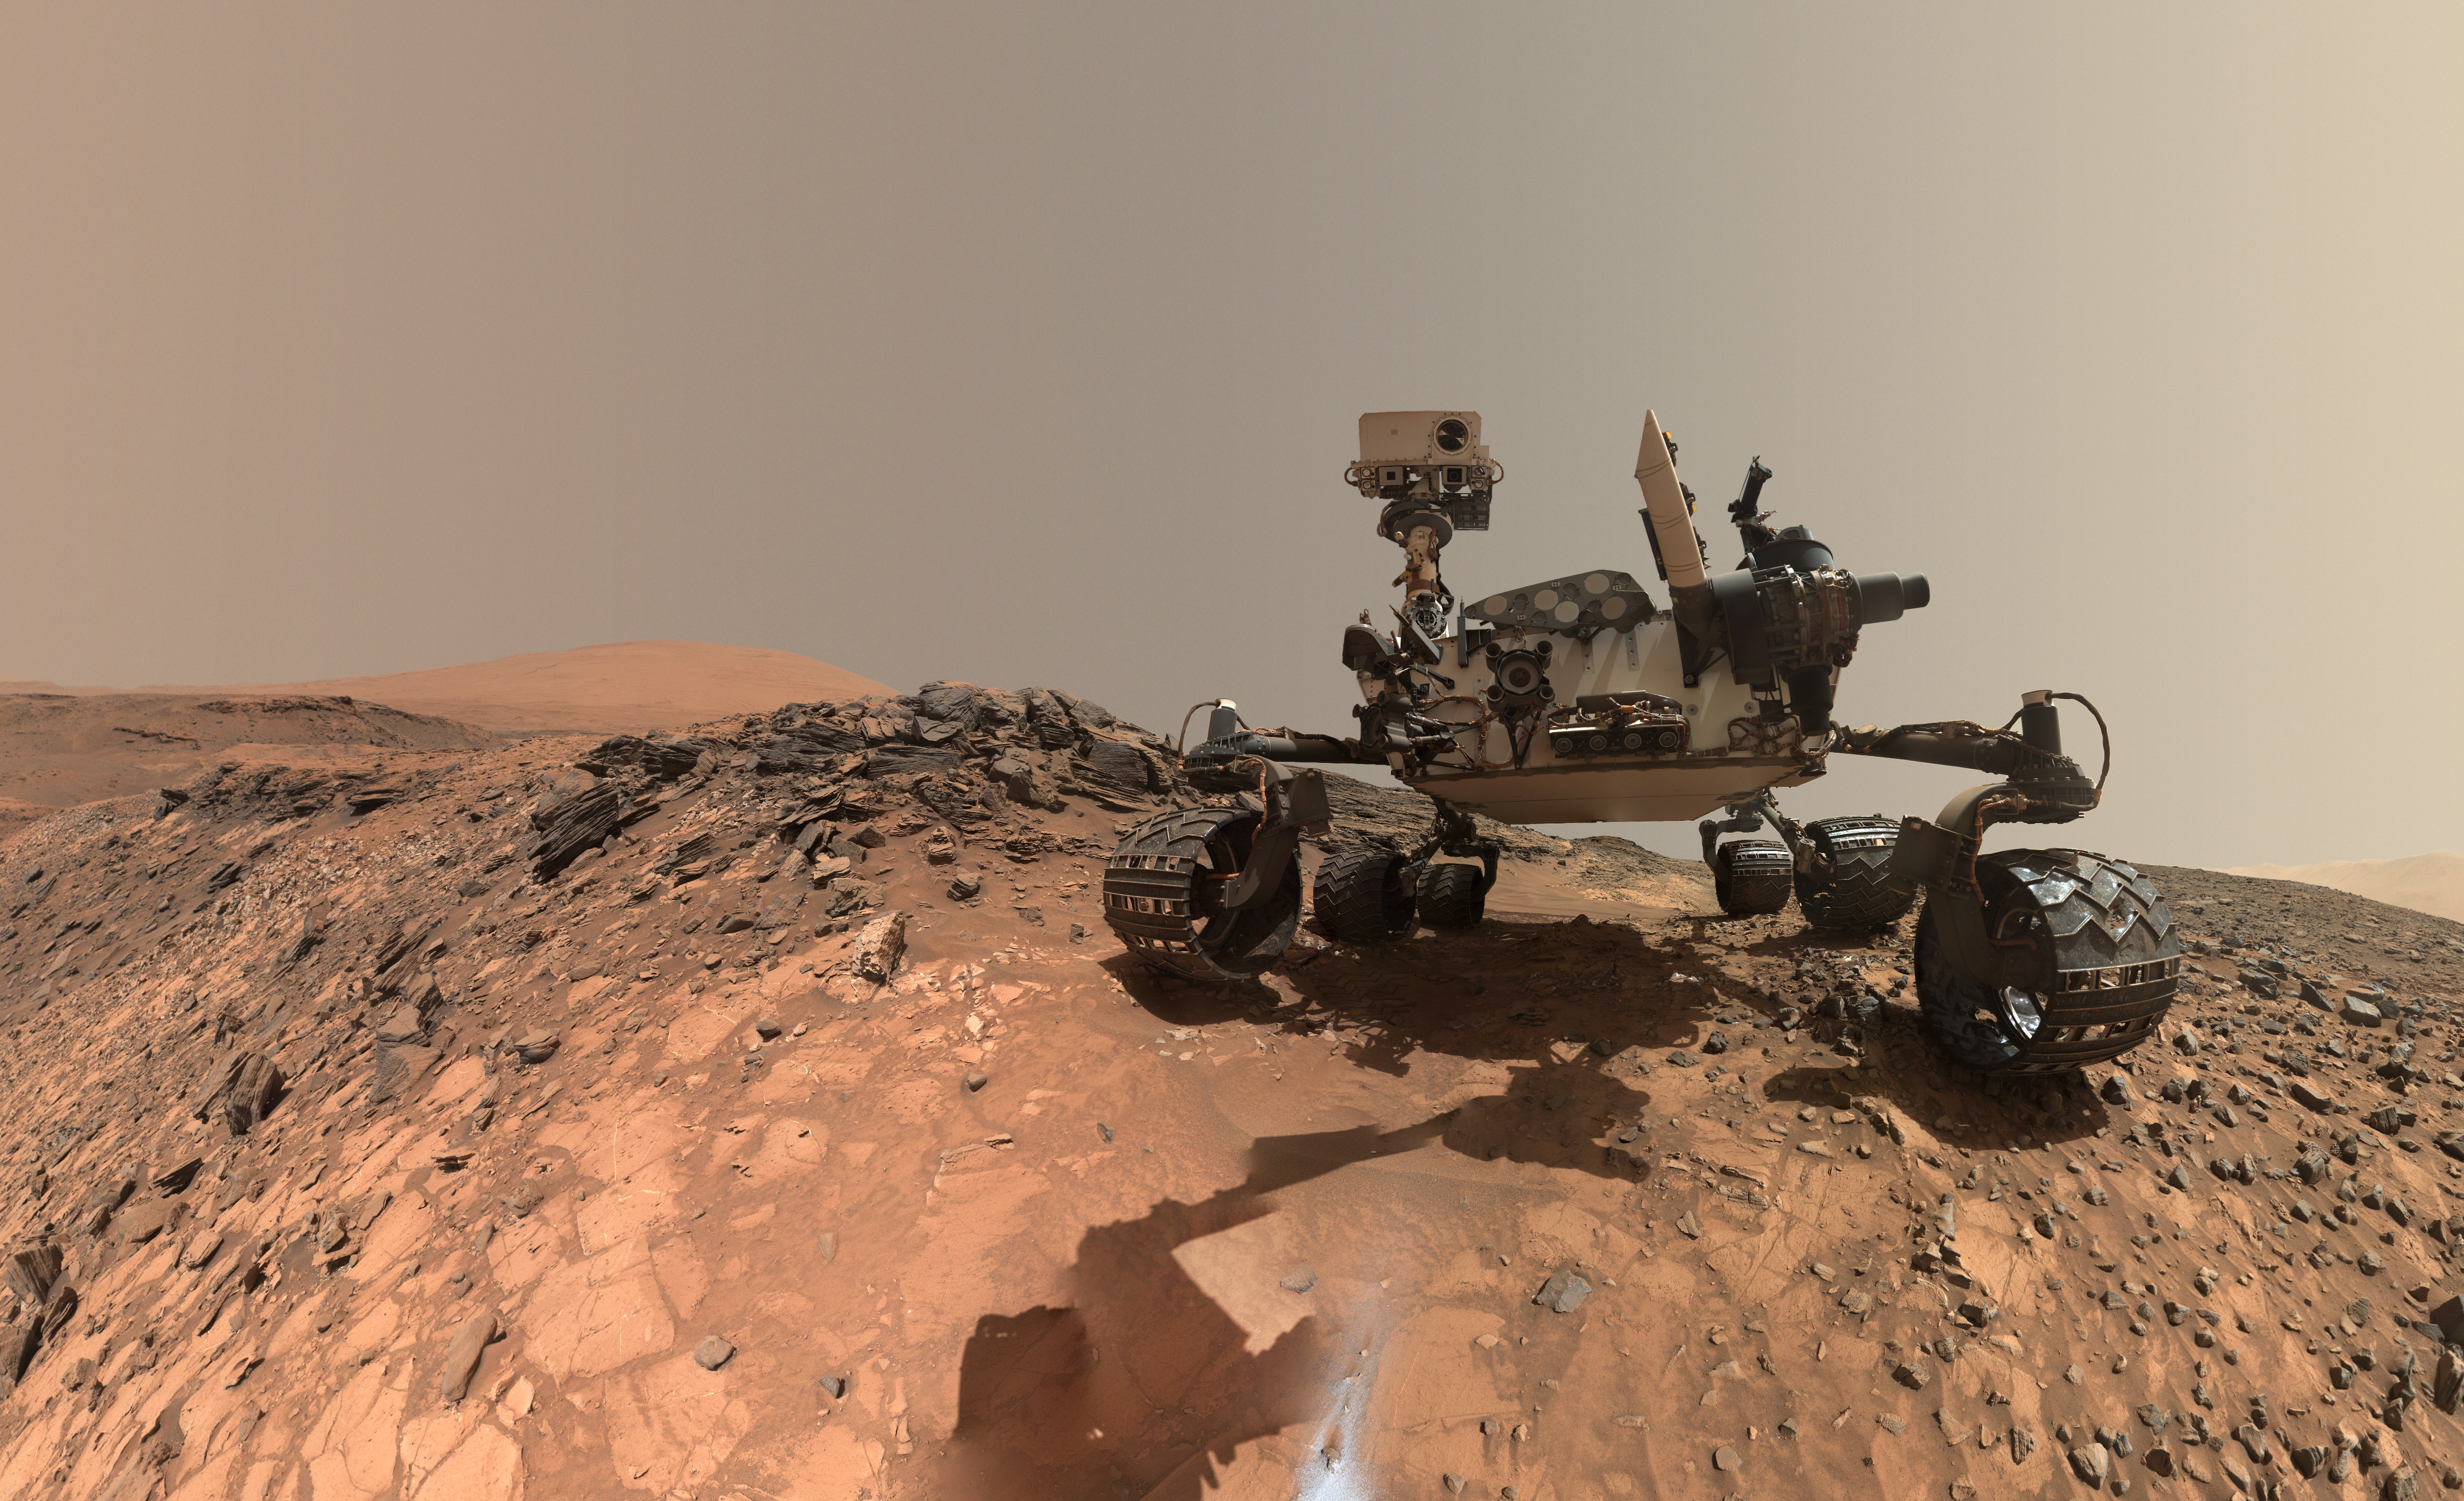 Looking Up at Mars Rover Curiosity in 'Buckskin' Selfie | NASA